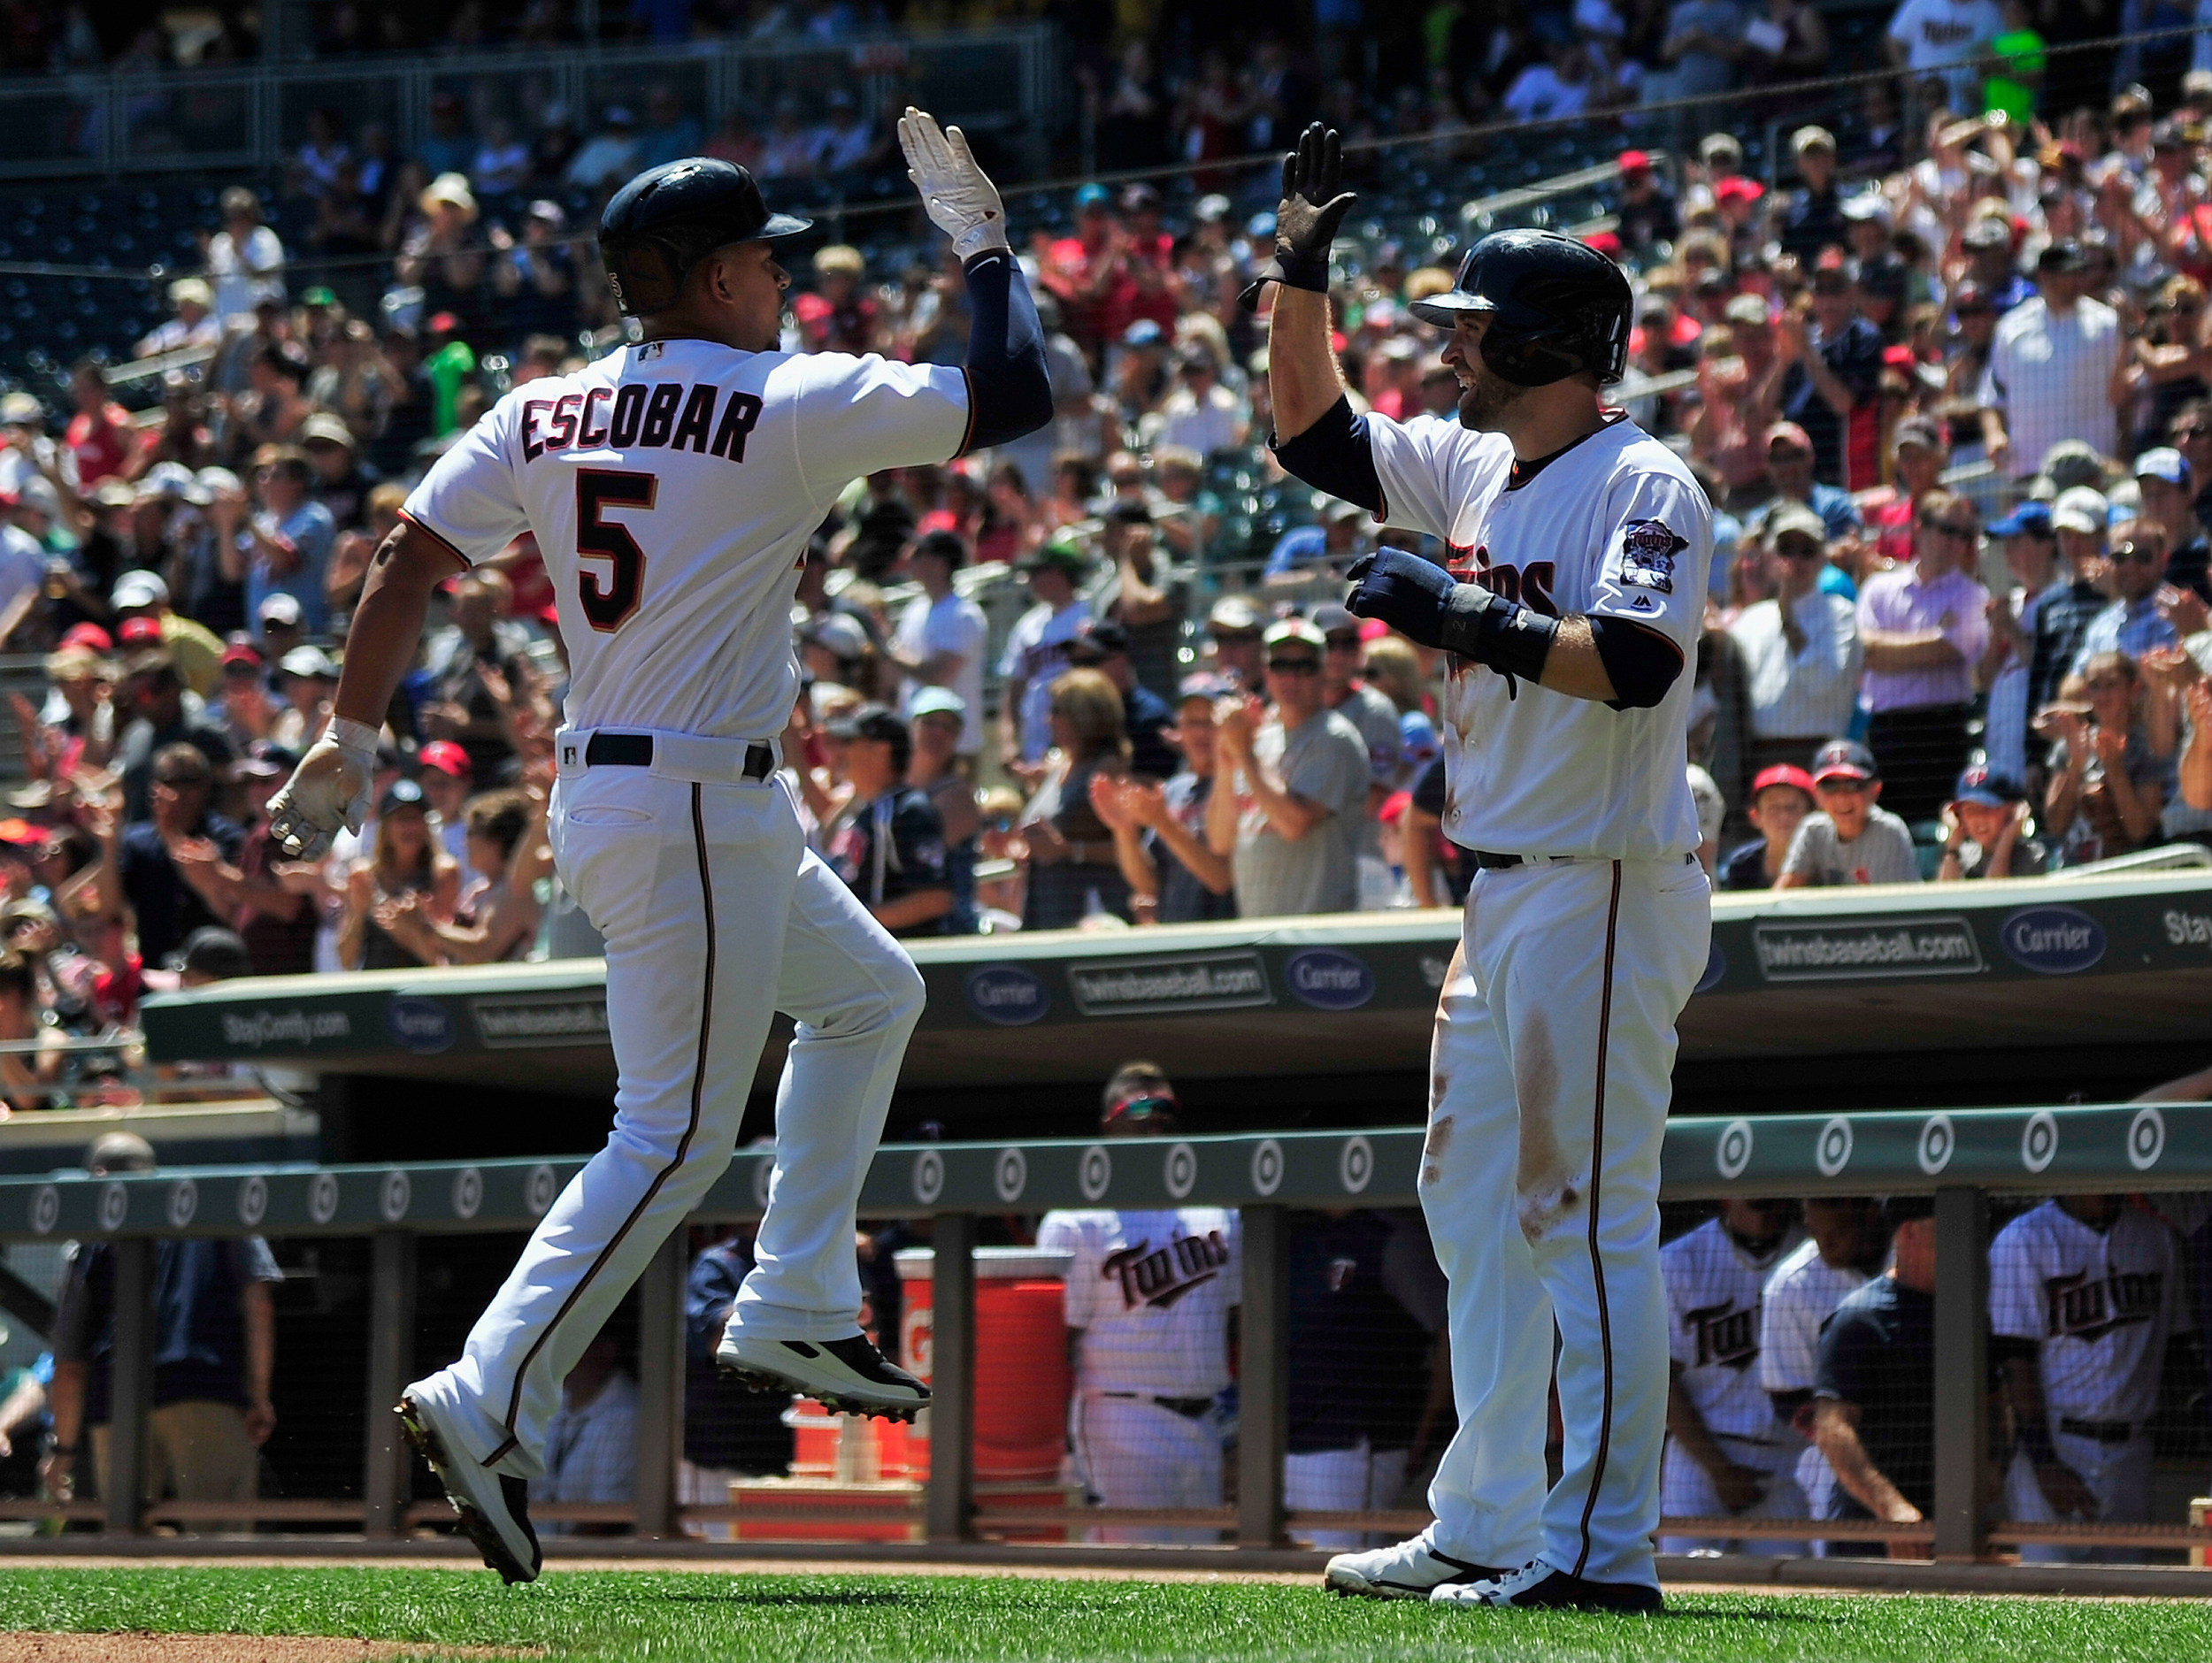 Santana leads to Twins to sweep, first place in AL Central